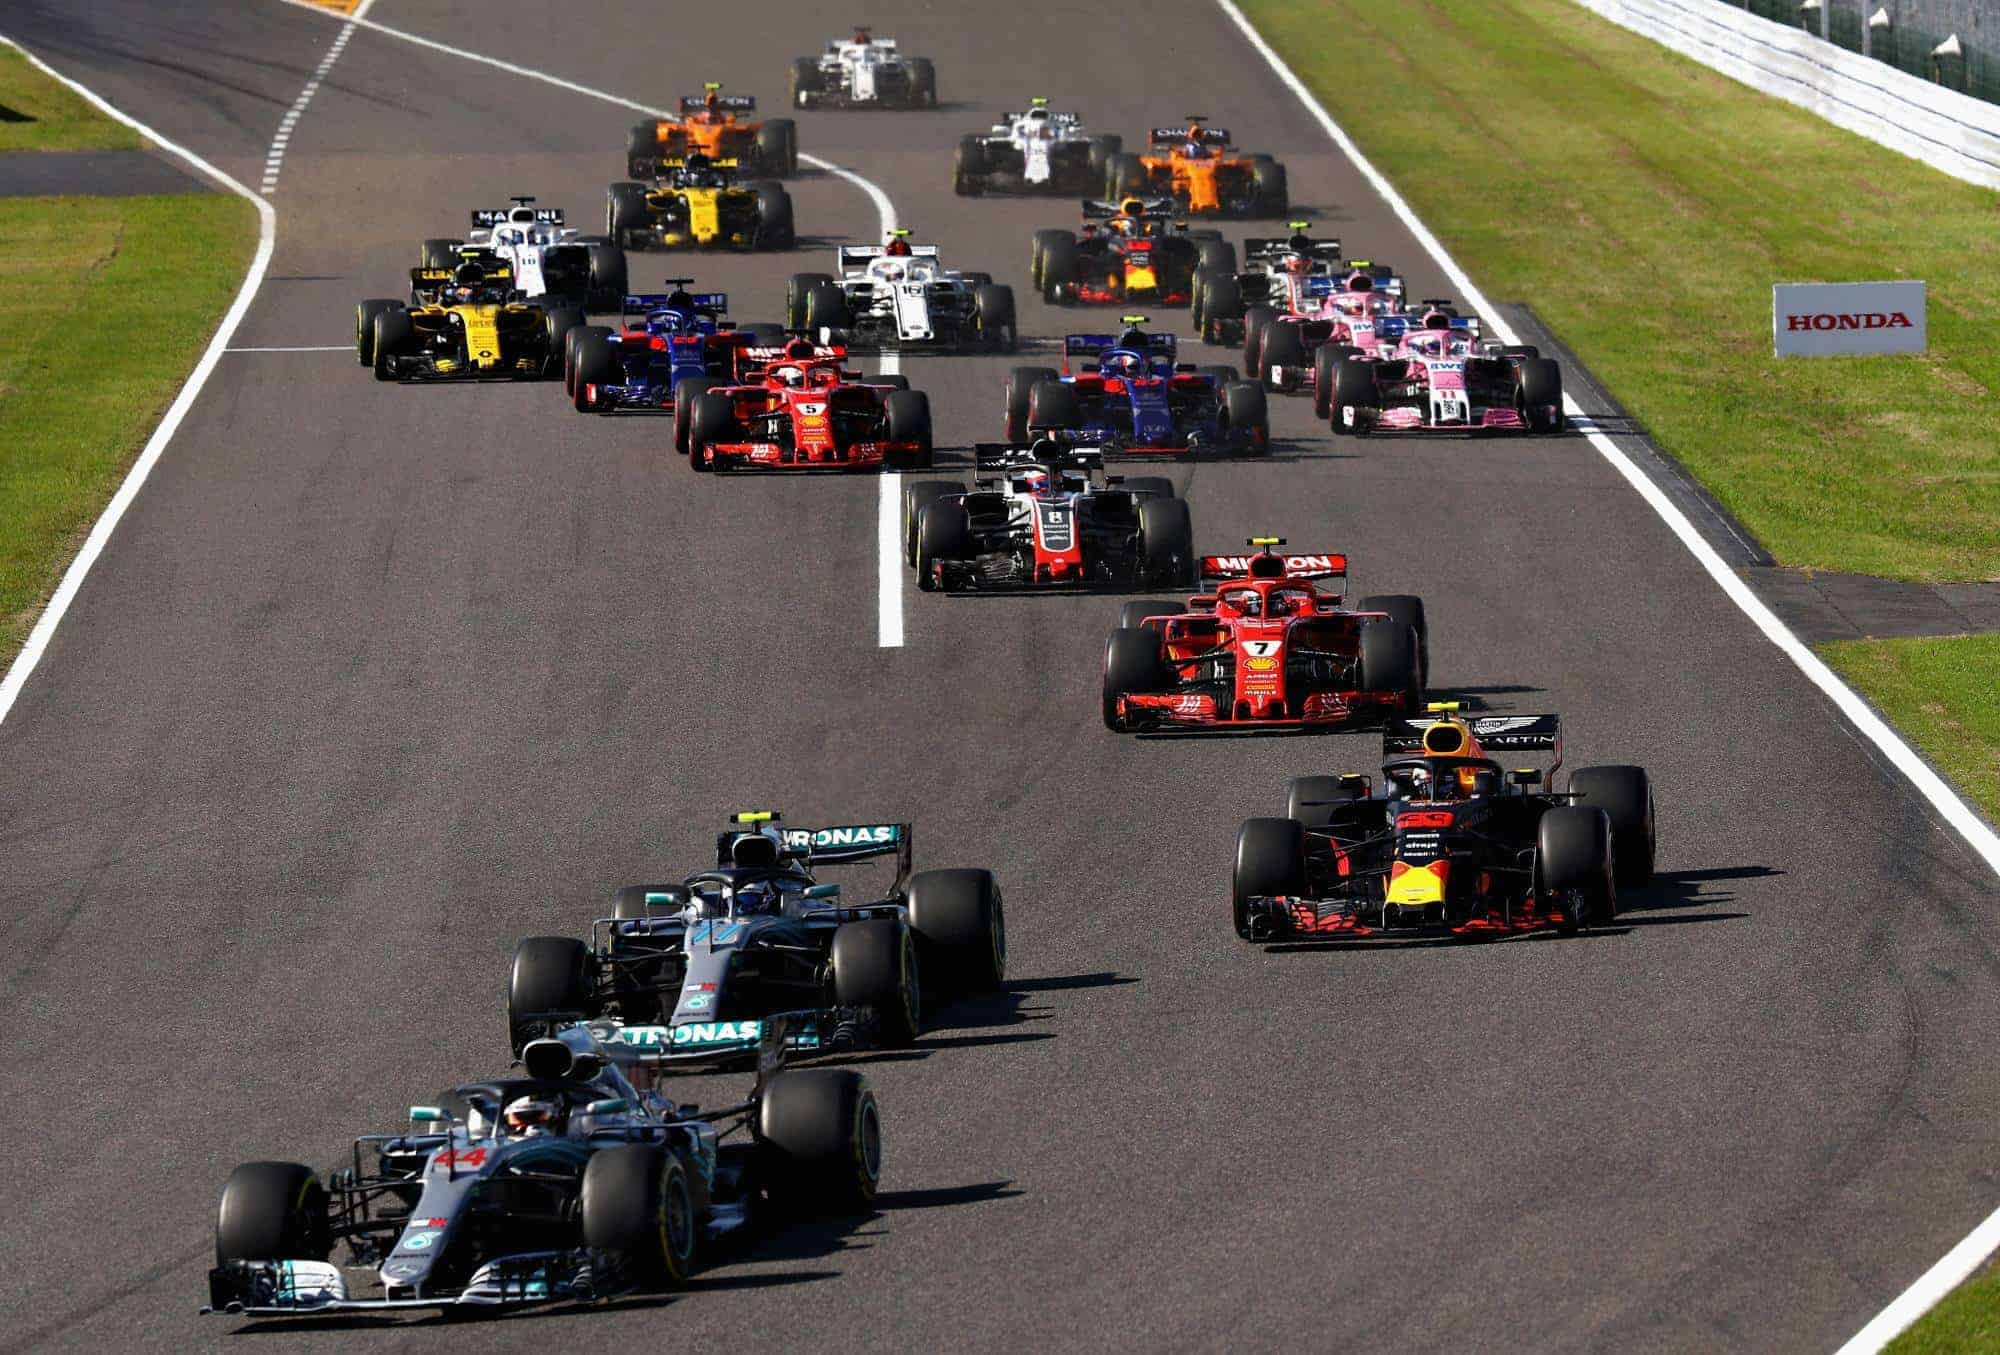 Japanese GP F1 2018 start Hamilton leads Bottas Verstappen Raikkonen Photo Red Bull